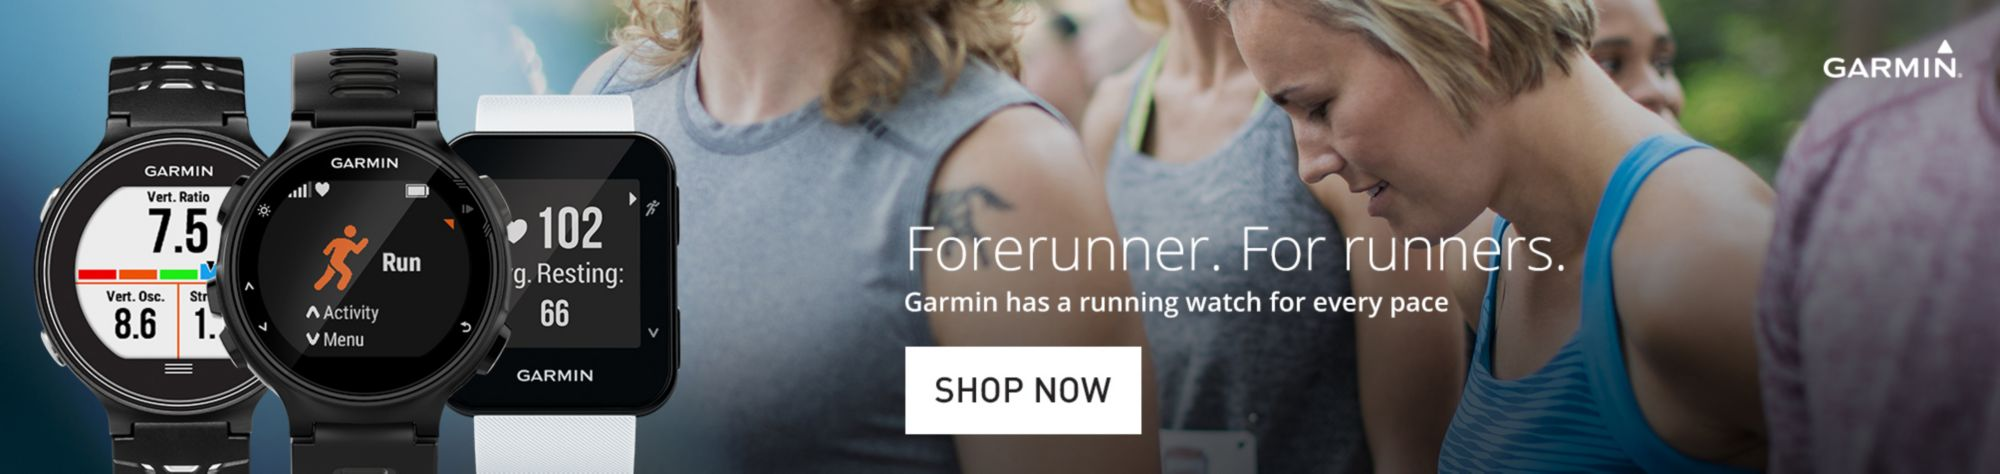 Shop Garmin Forerunner